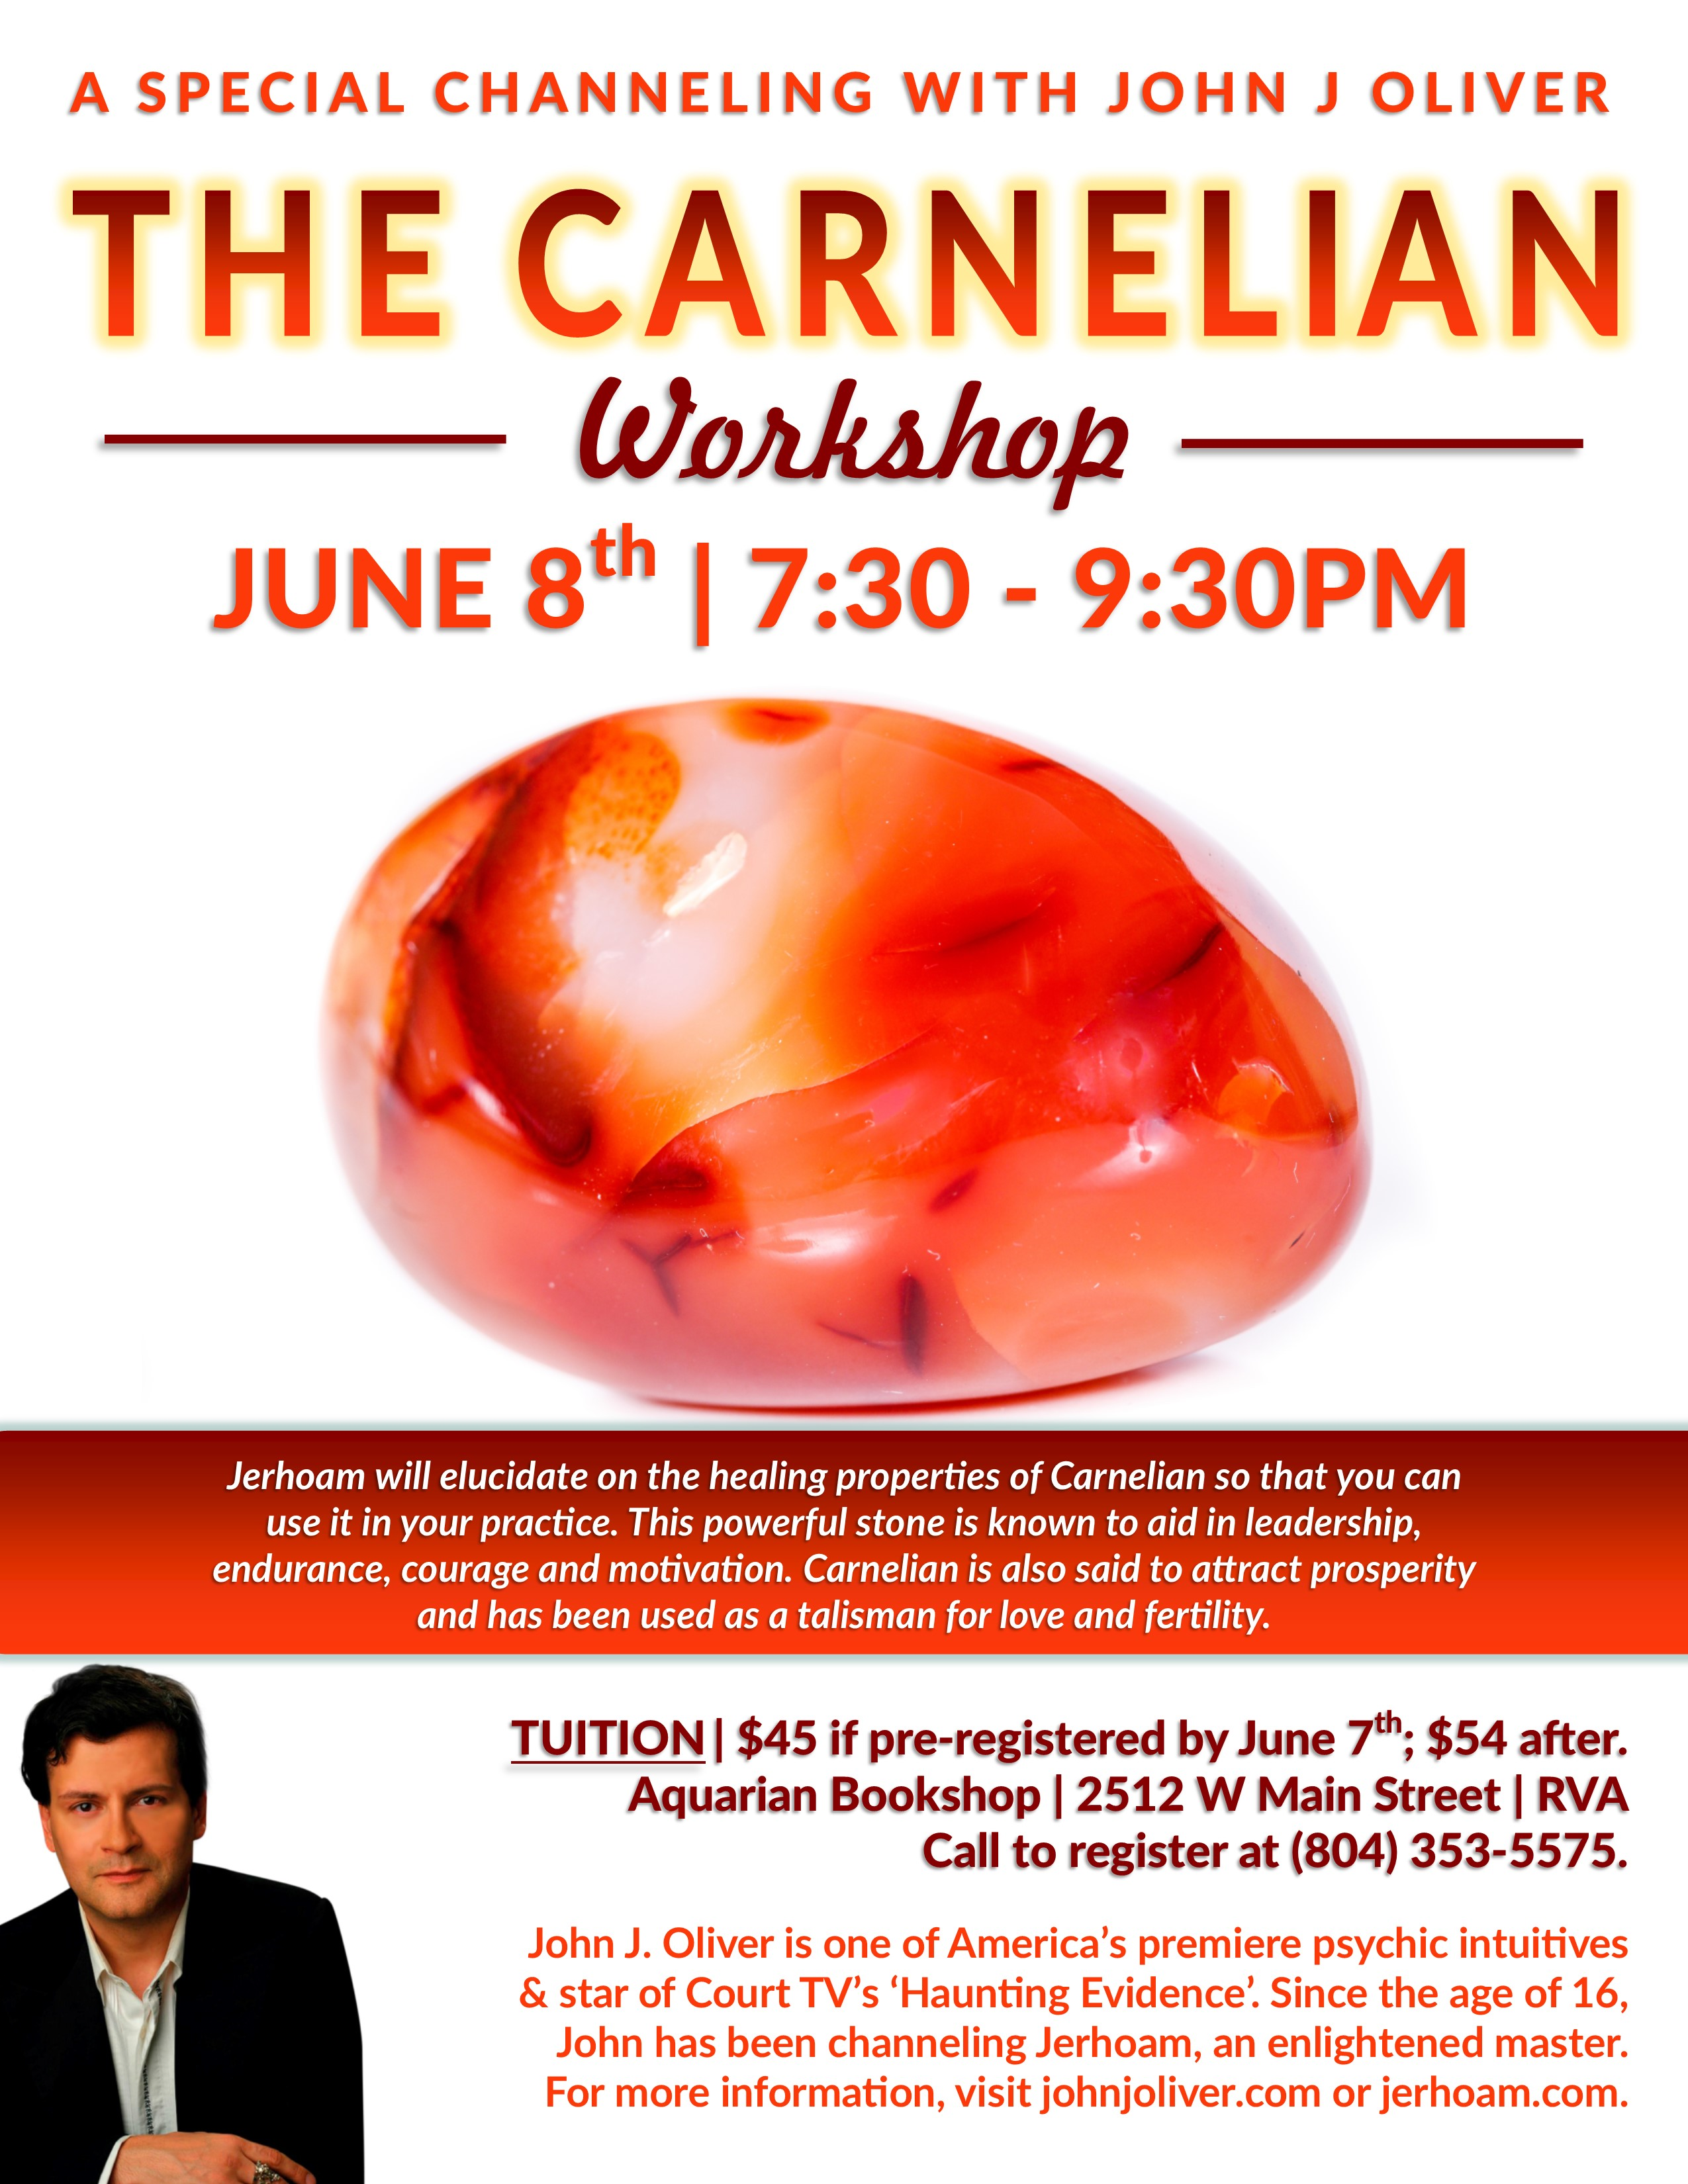 Carnelian: A Special Channeling with John J Oliver | June 8, 7:30-9:30